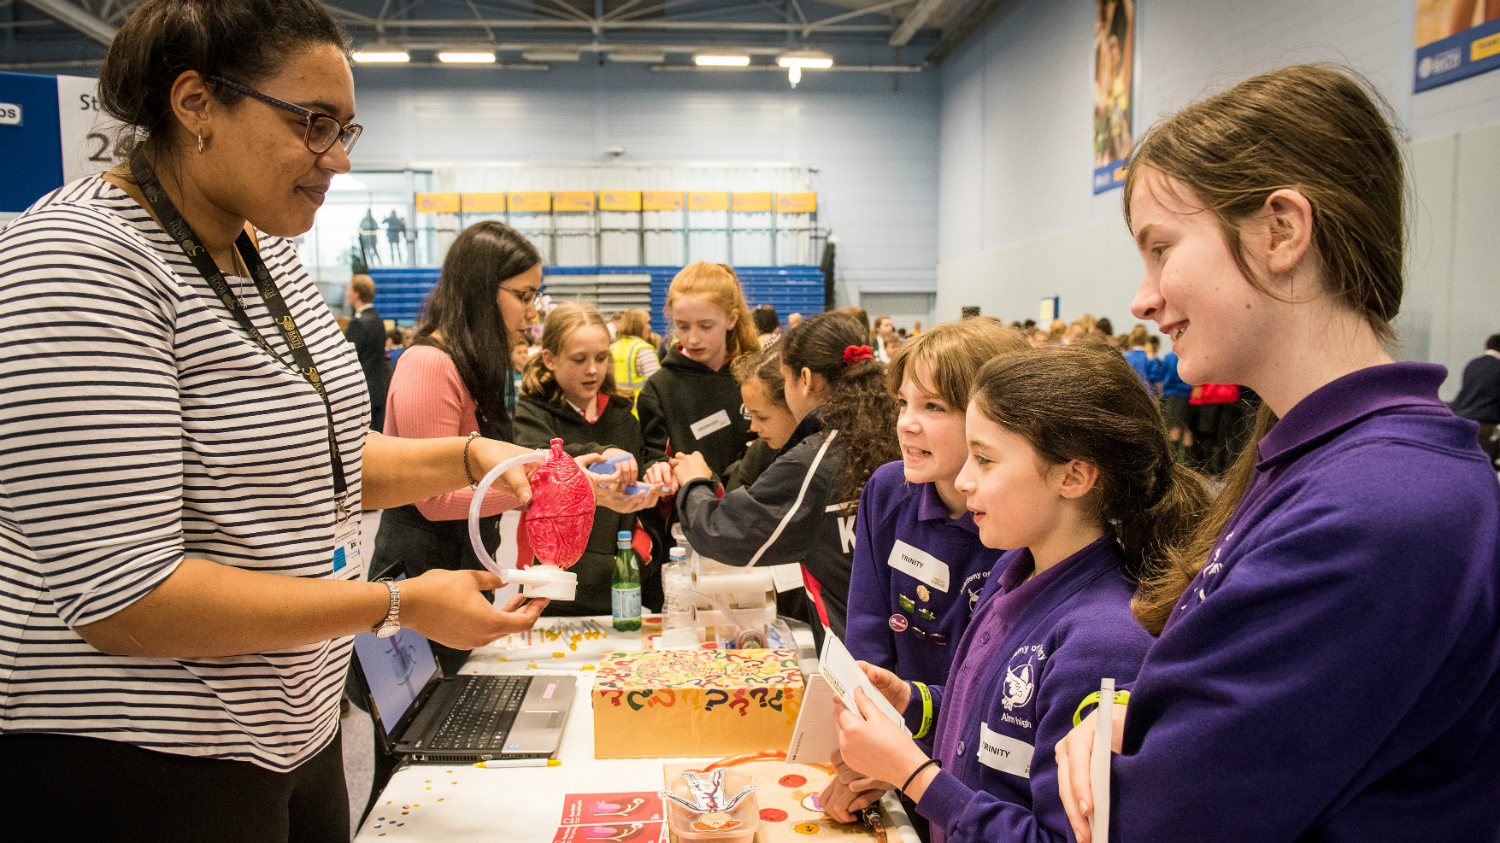 School pupils looking at a science stand